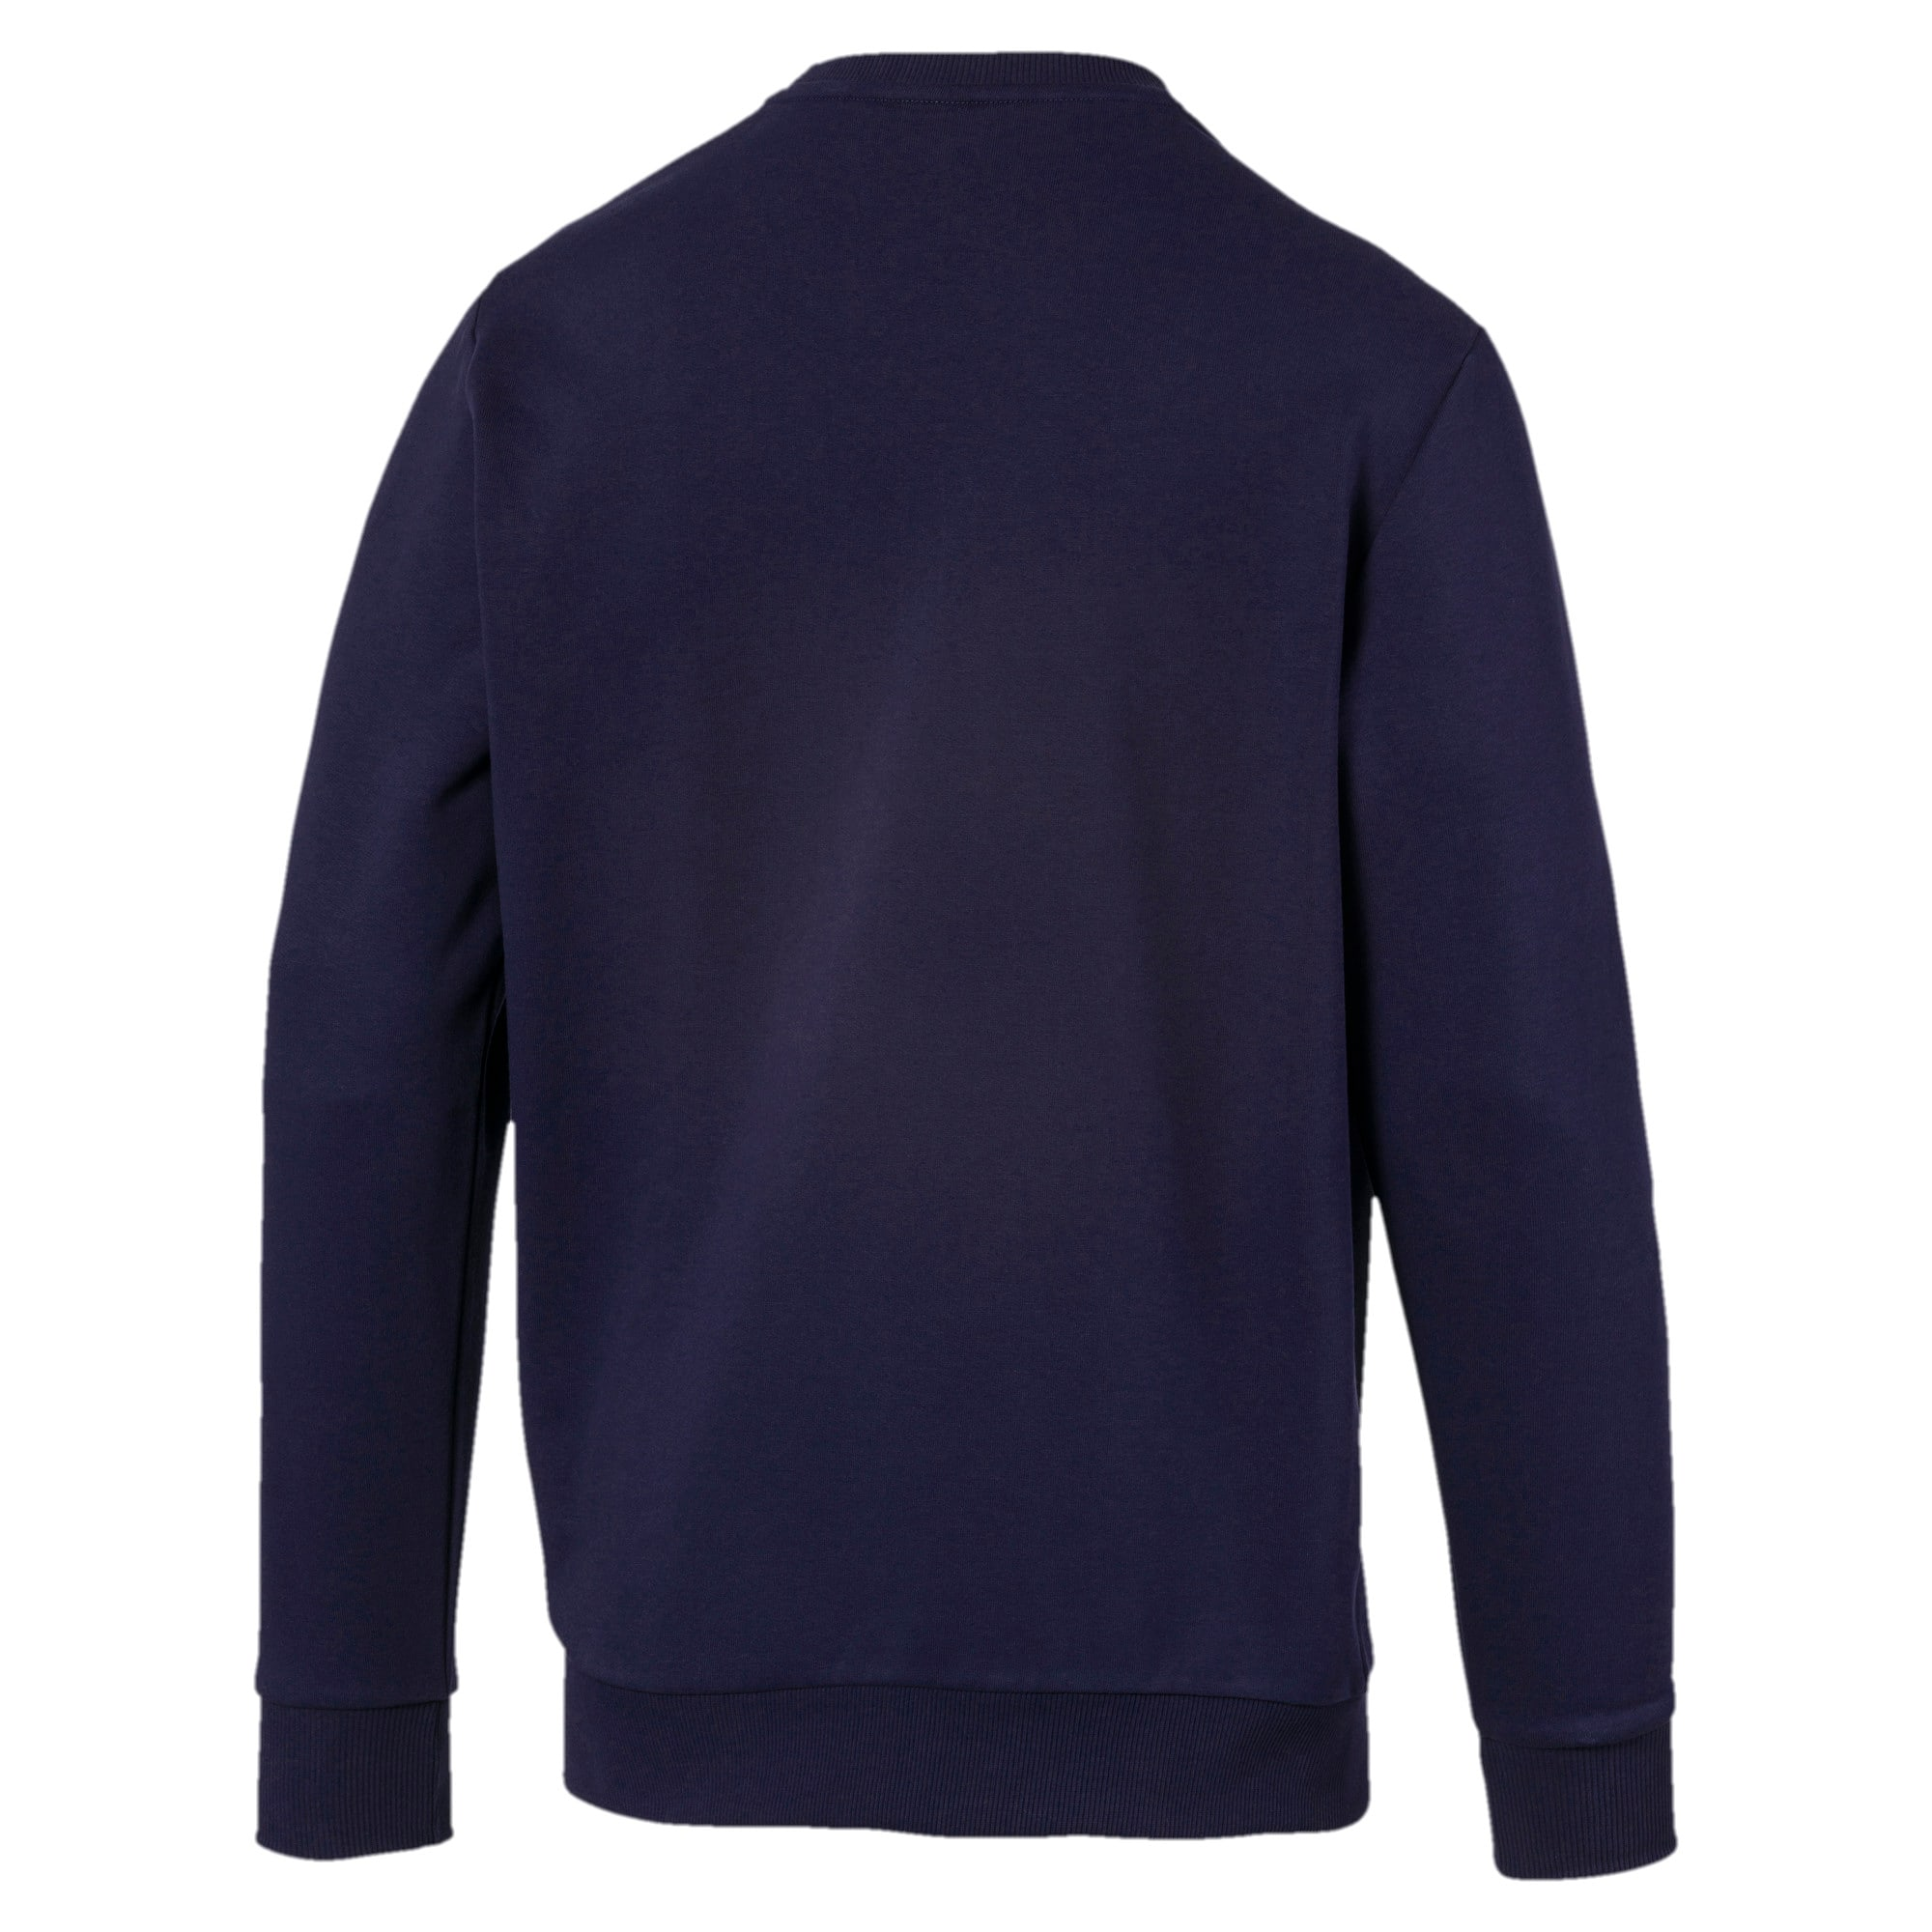 Thumbnail 5 of Classics Logo Men's Crewneck Sweatshirt, Peacoat, medium